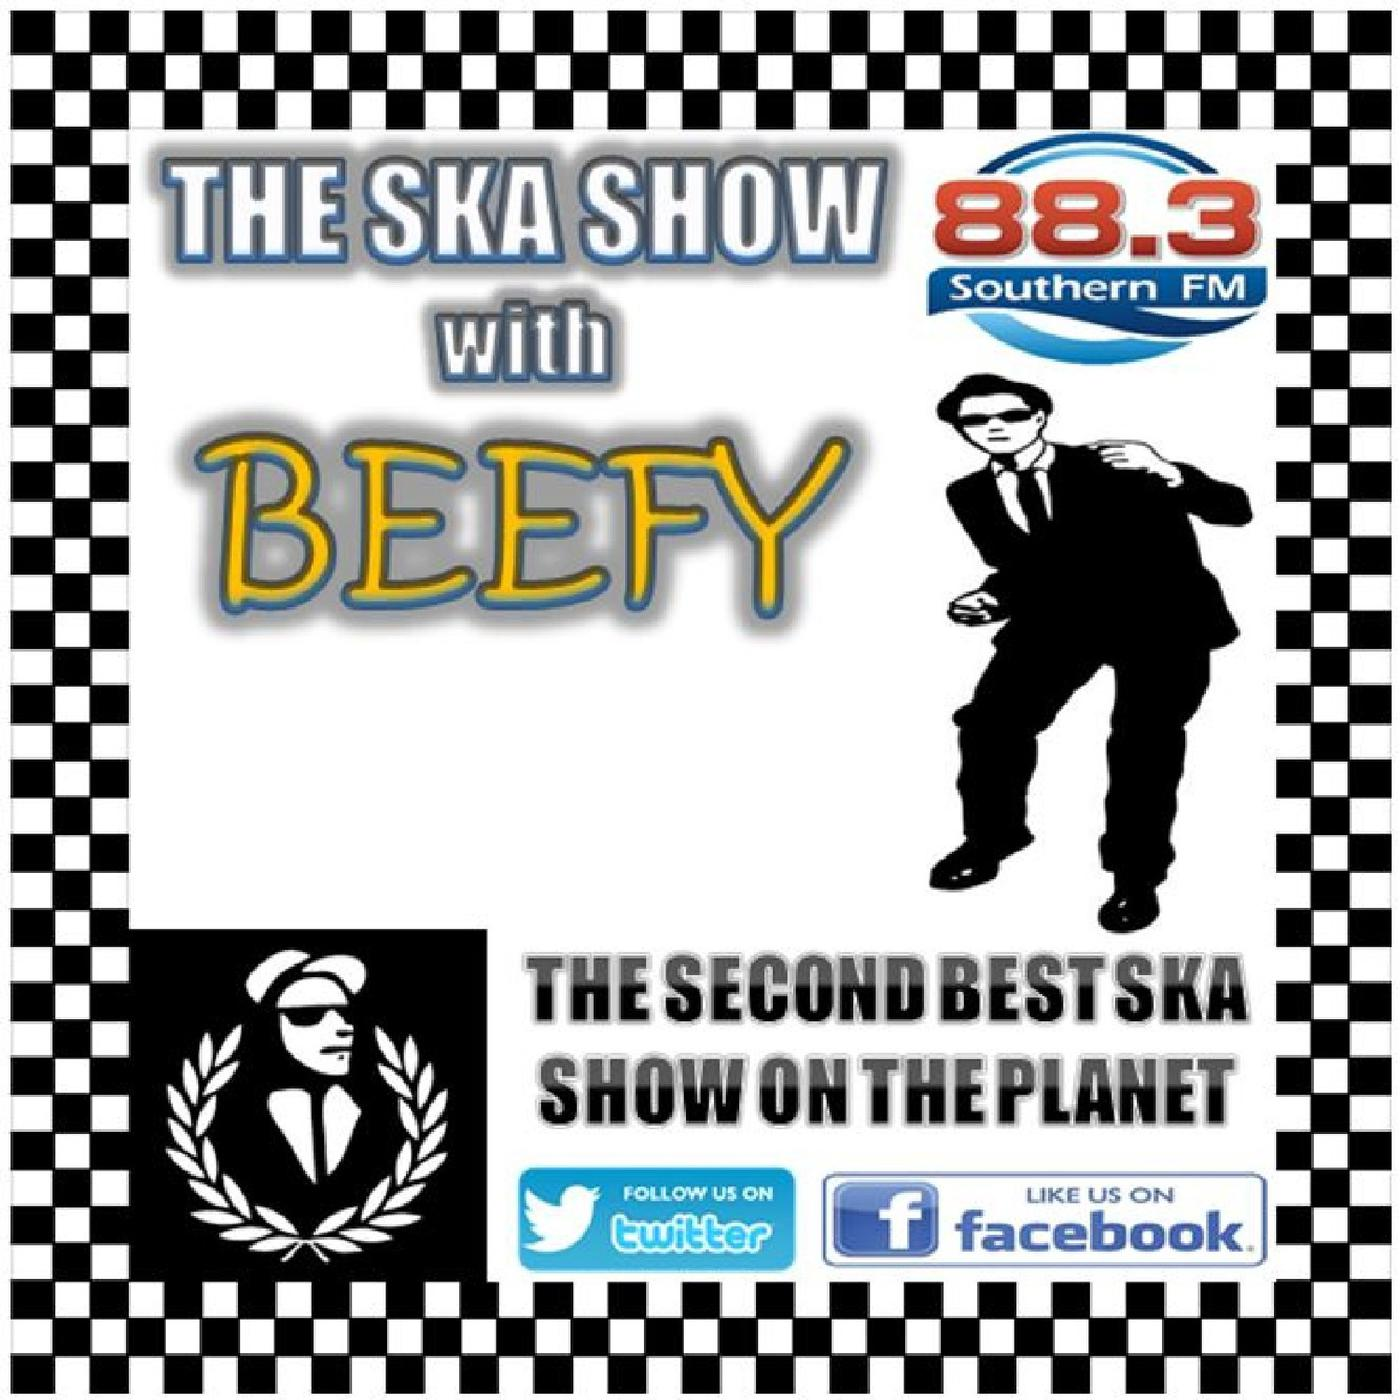 The Ska Show With Beefy, Jan 10th 2019